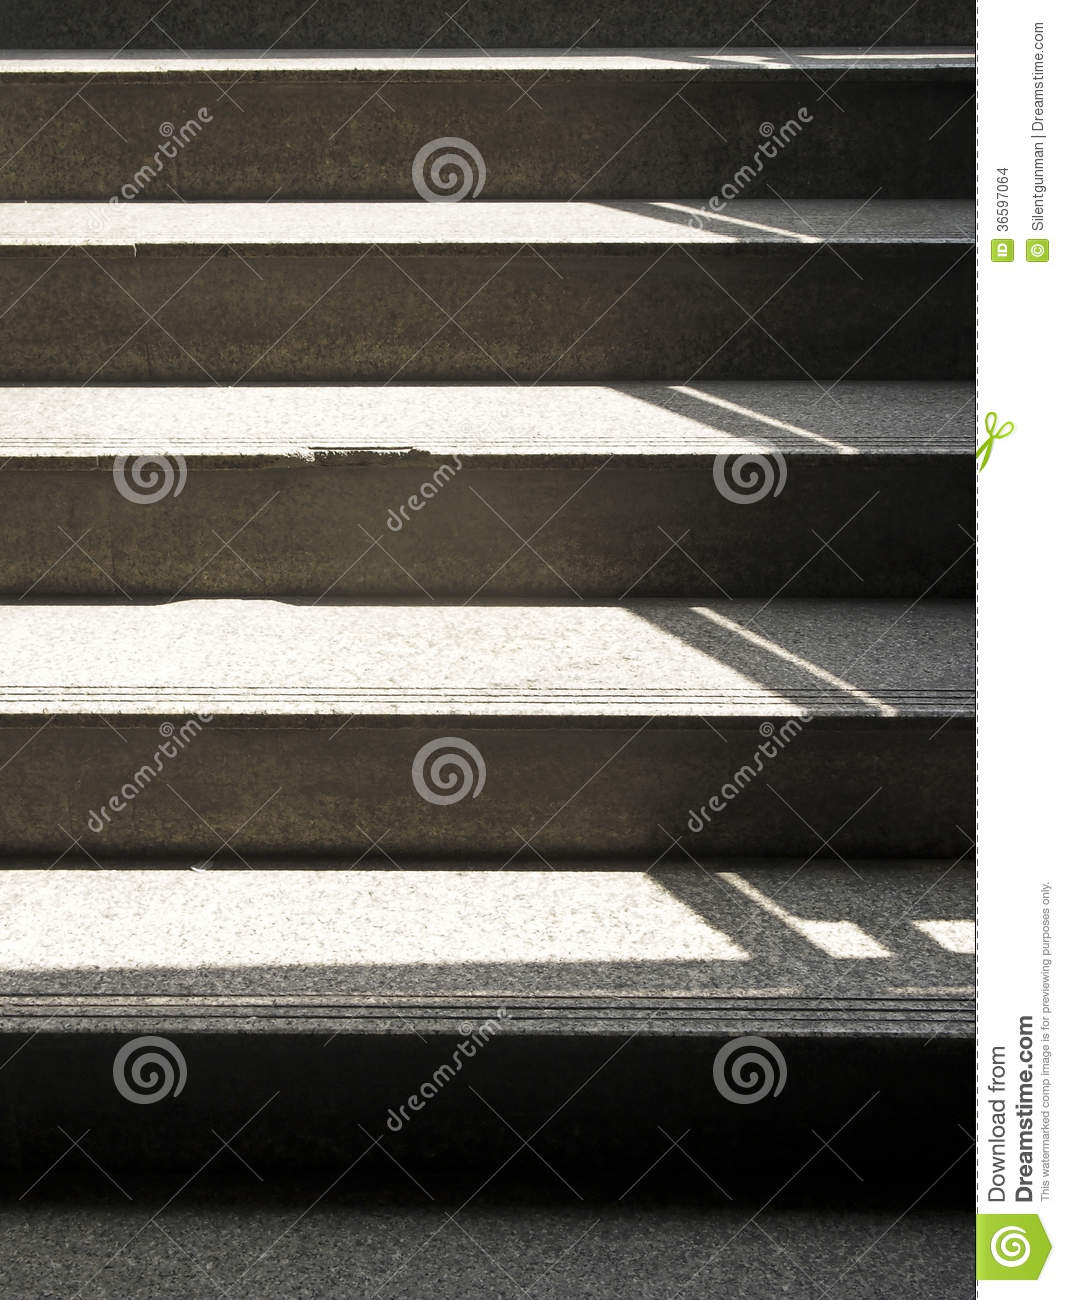 Shadow Gap Staircase Lighting: Staircase In Light Stock Photo. Image Of Steps, Concept